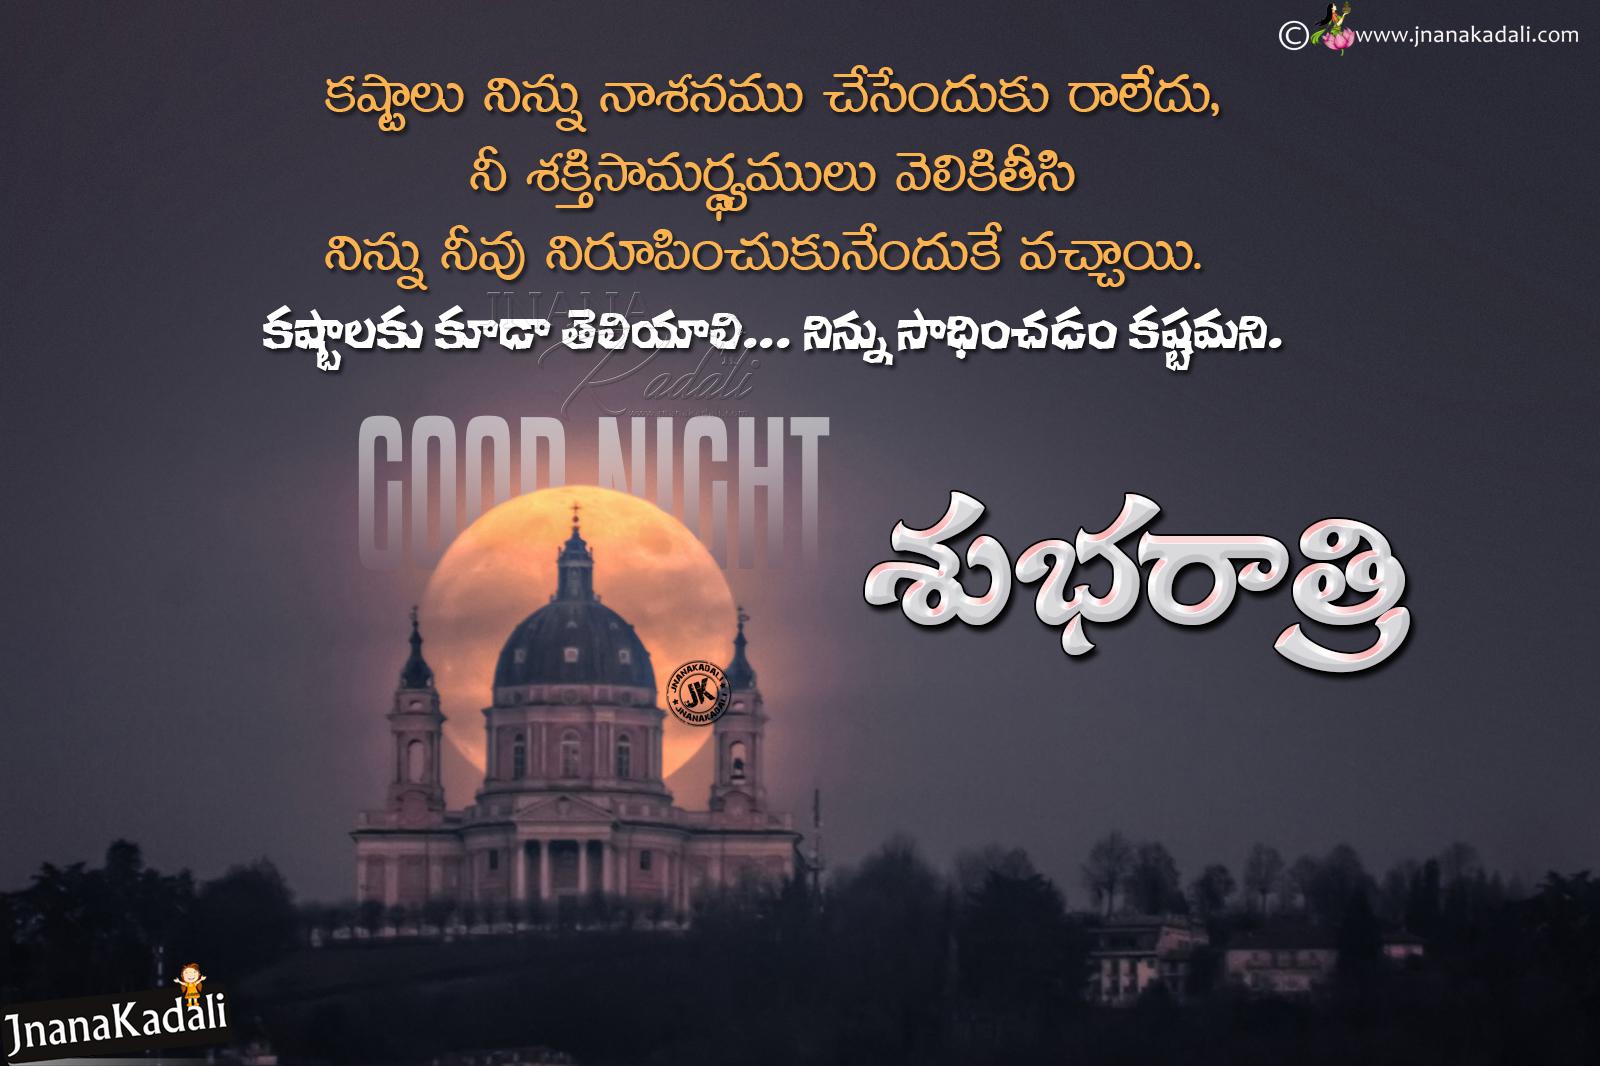 Good Night Quotes In Telugu Famous Inspirational Good Night Messages Share Chat Sharing Good Night Telugu Quotes Brainysms